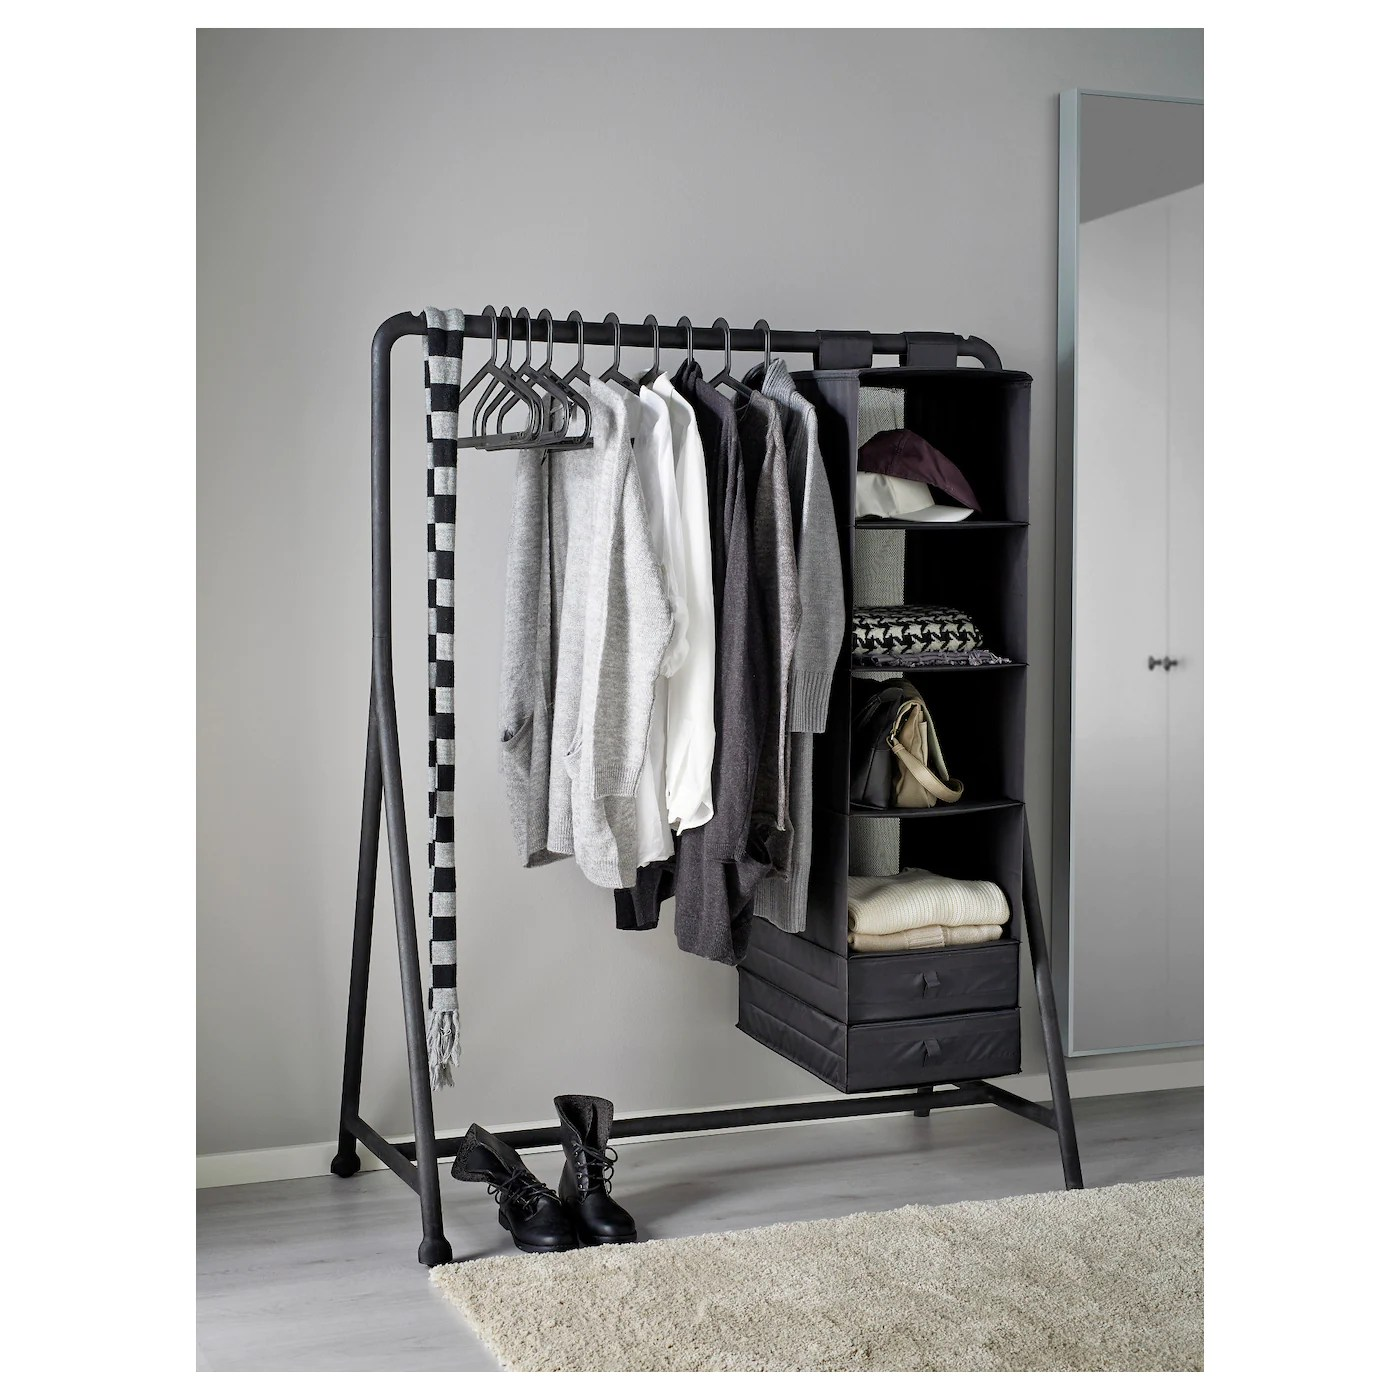 turbo clothes rack in outdoor black 117x59 cm